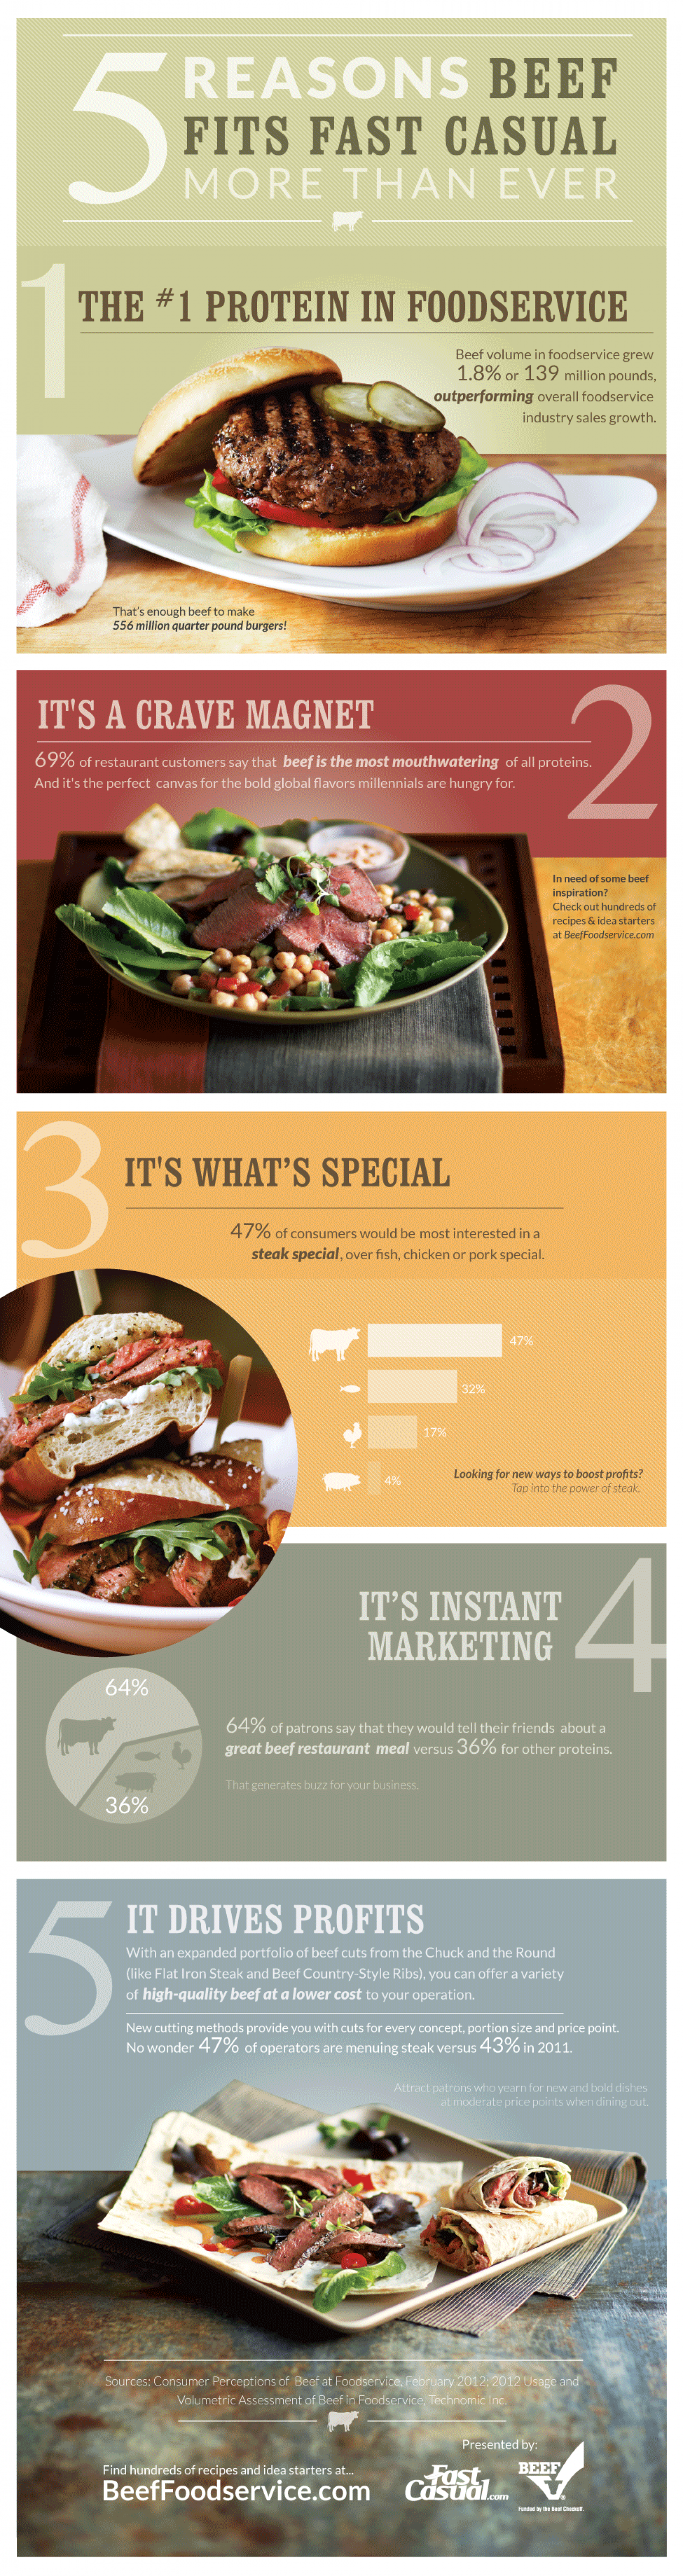 Five Reasons Beef Fits Fast Casual More than Ever Infographic